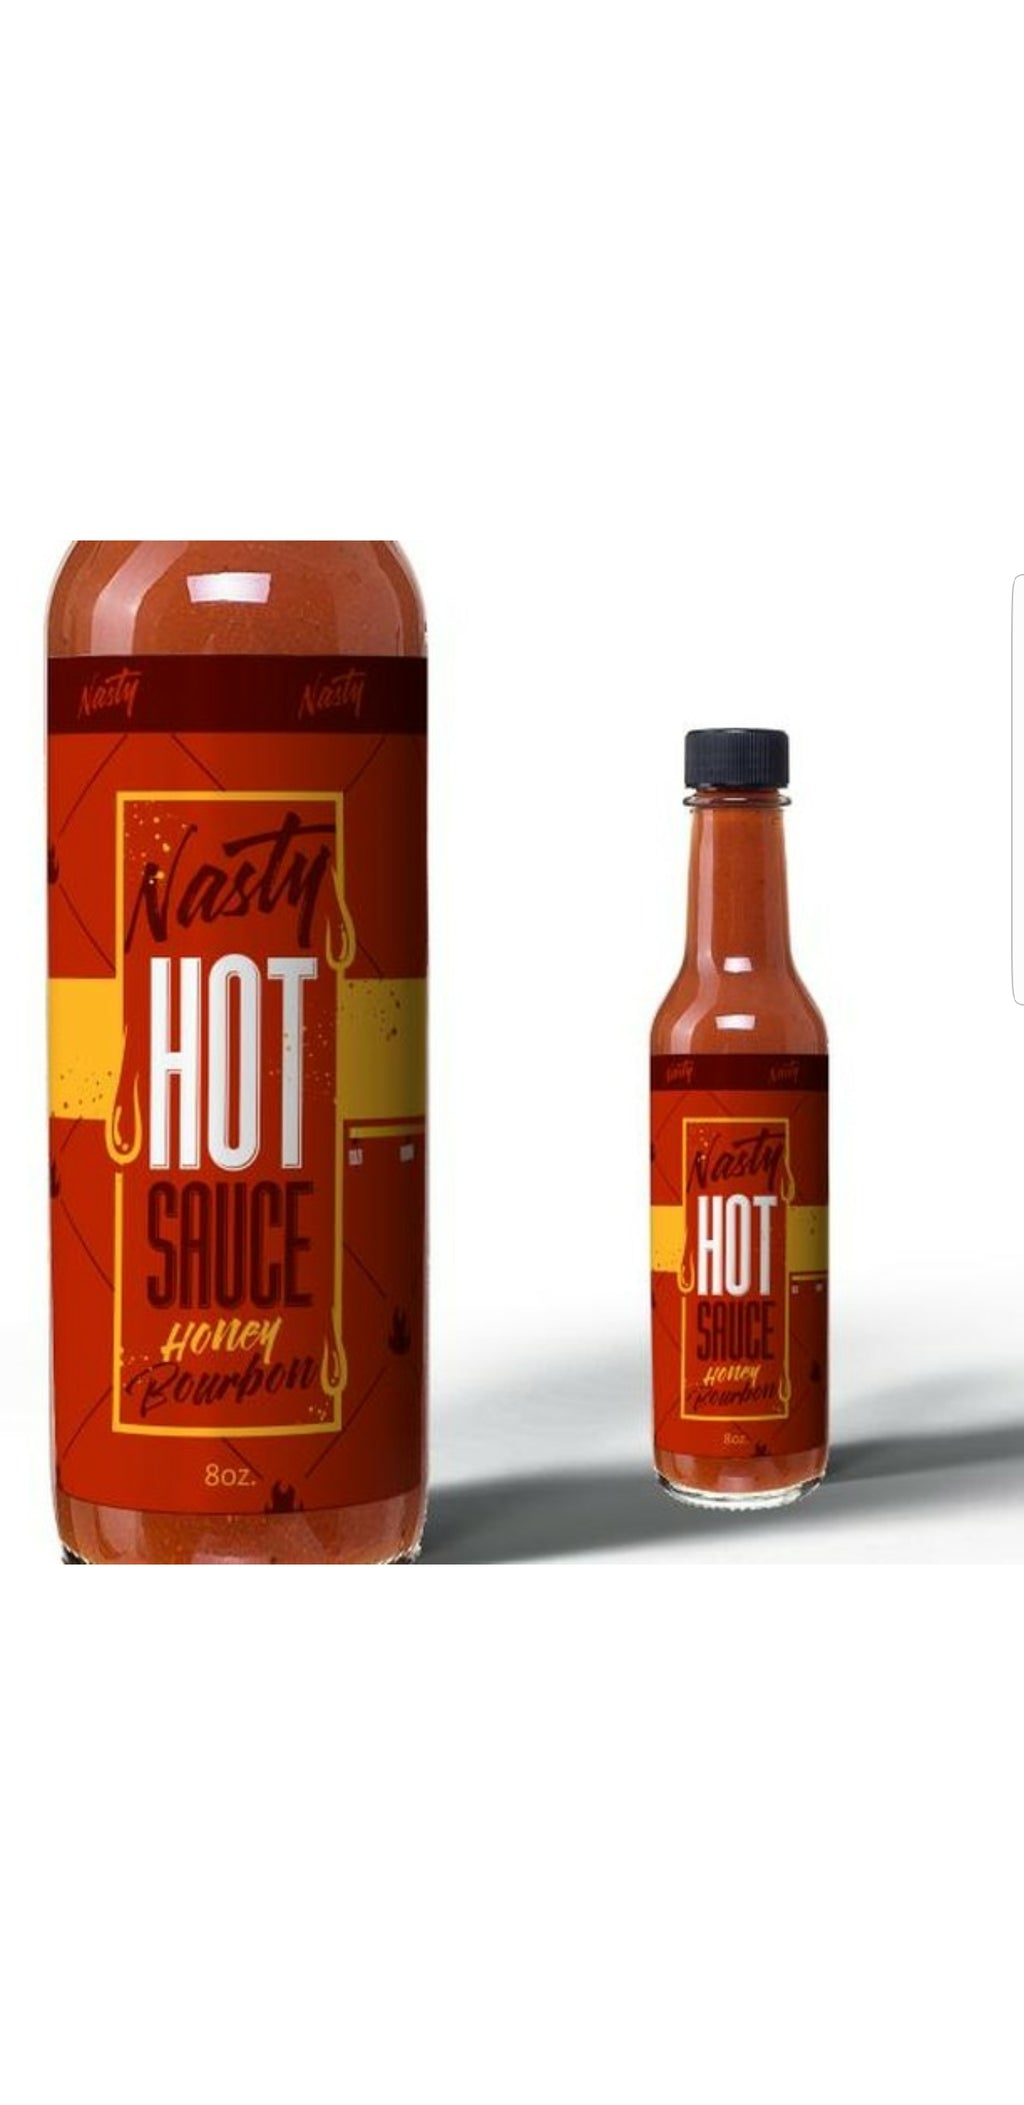 Nasty Honey Bourbon Hot Sauce